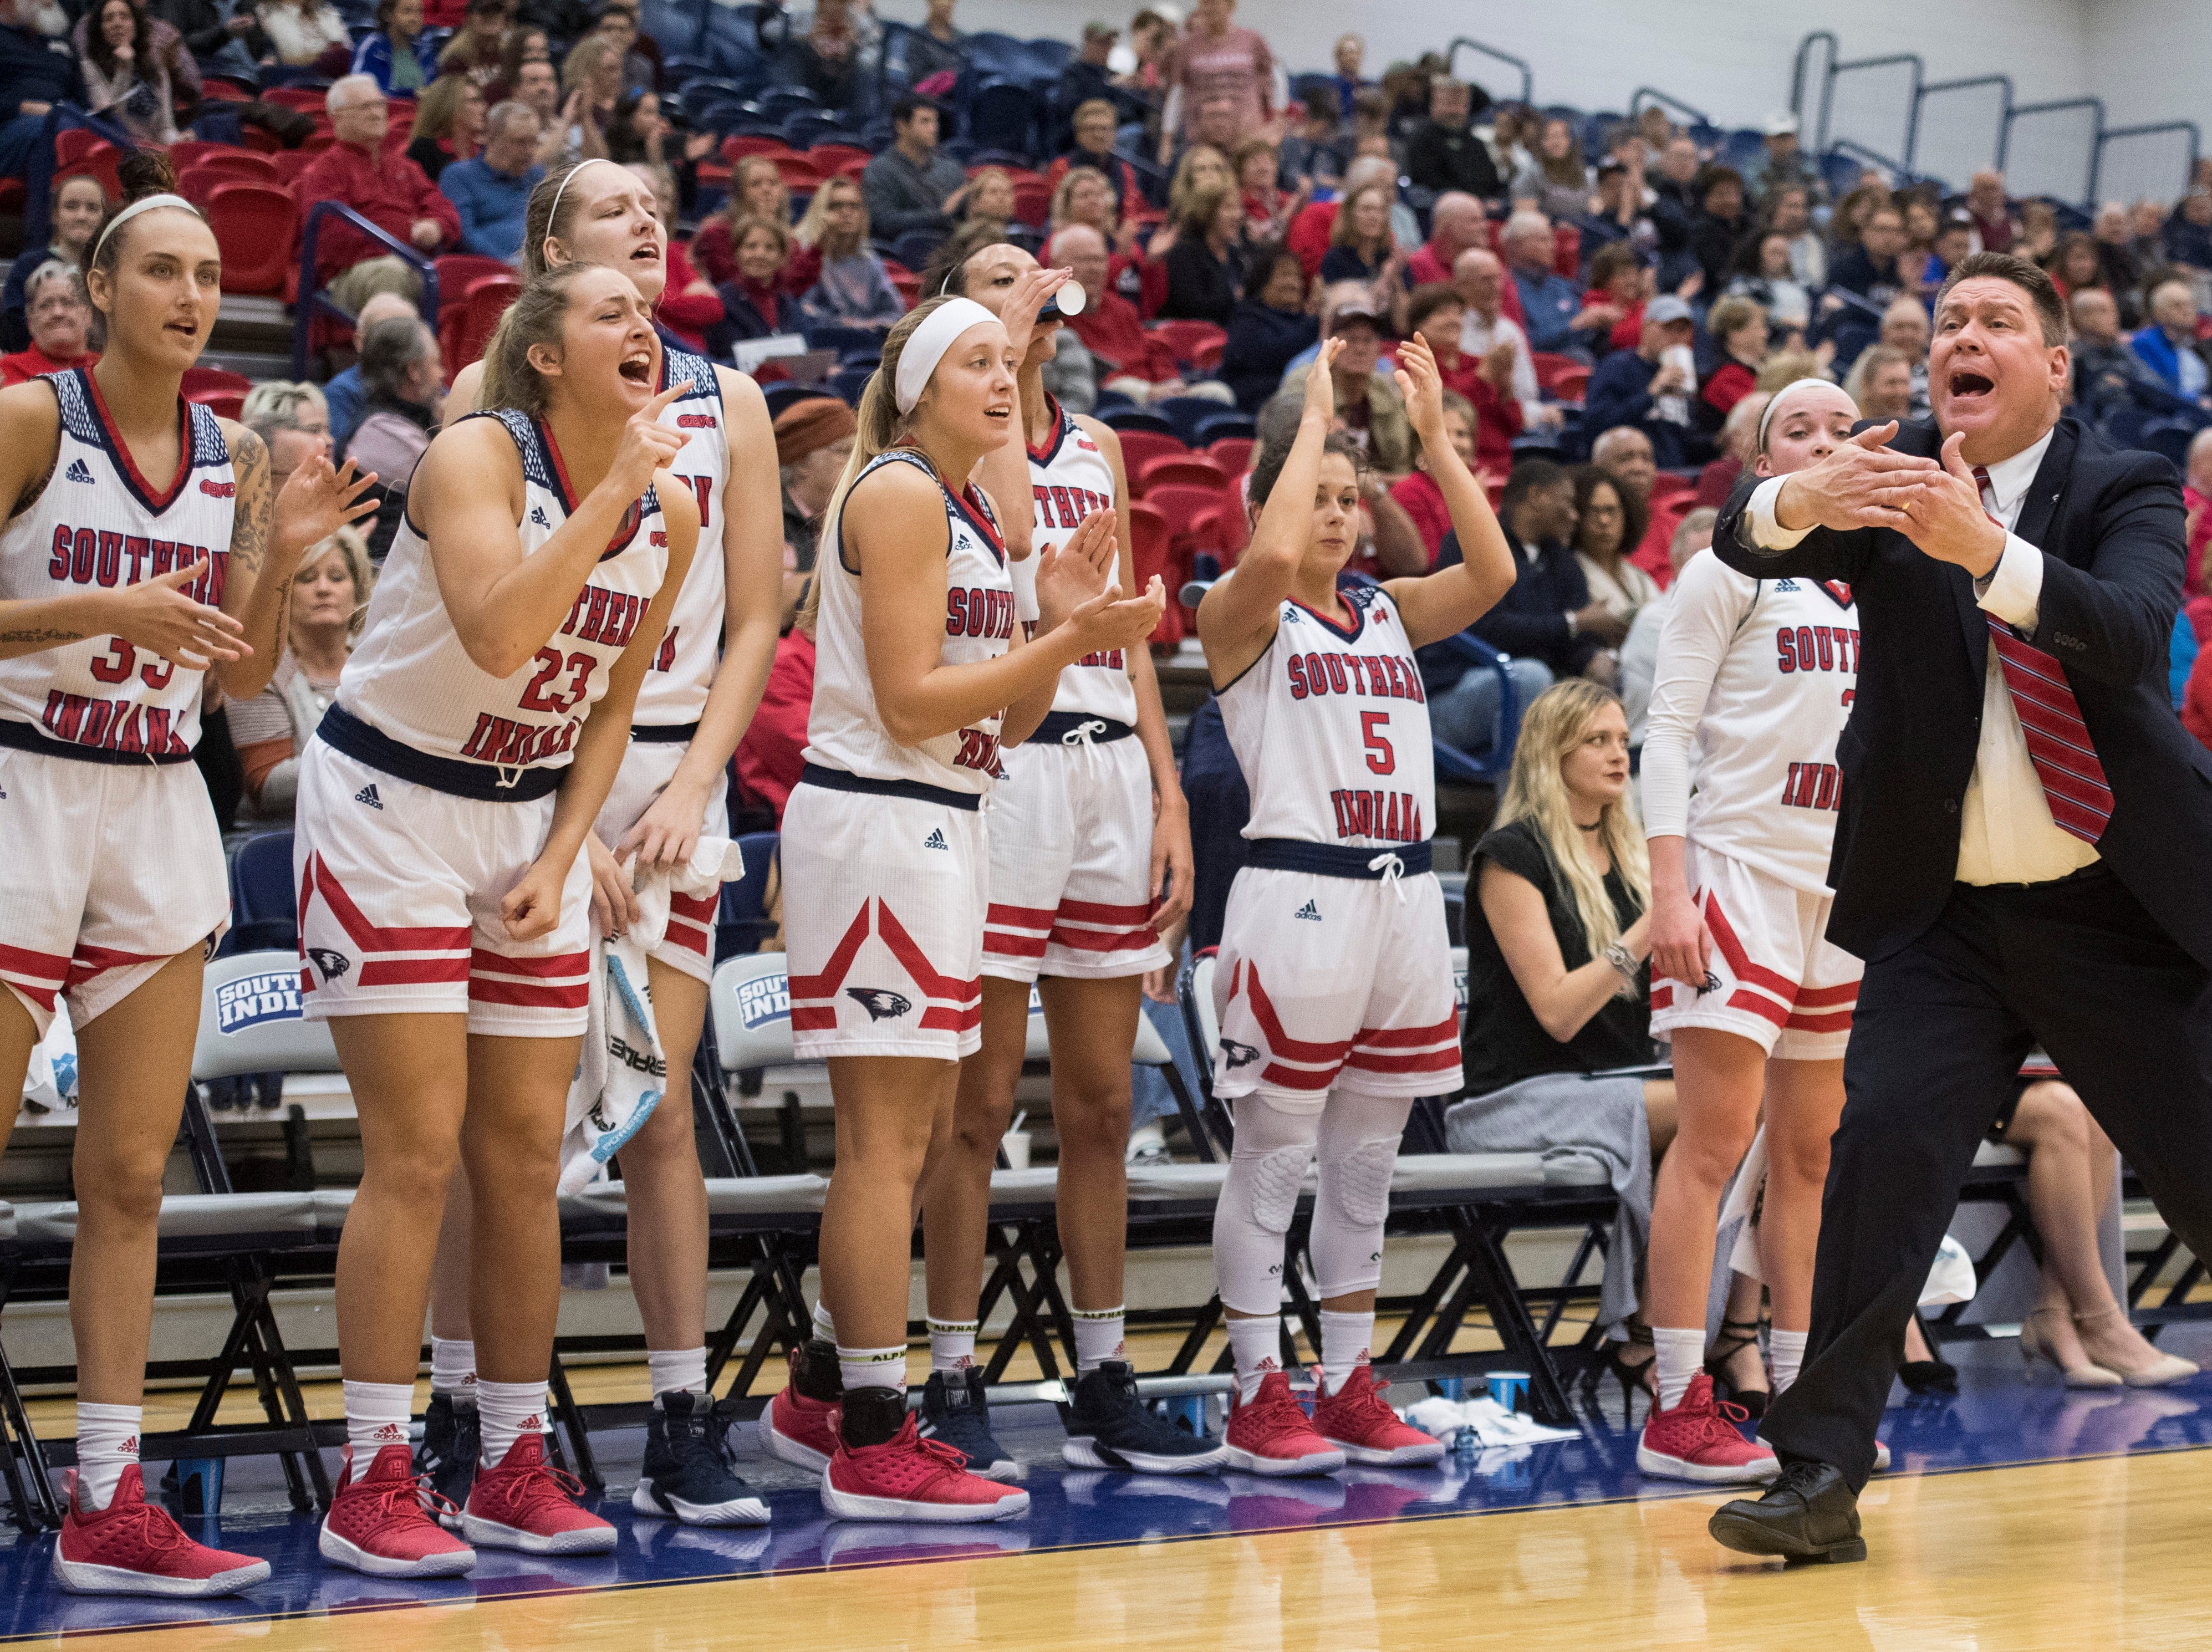 USI's Women's Basketball Head Coach Rick Stein calls a timeout during the USI vs Bellarmine game at the PAC Saturday, Dec. 1, 2018.